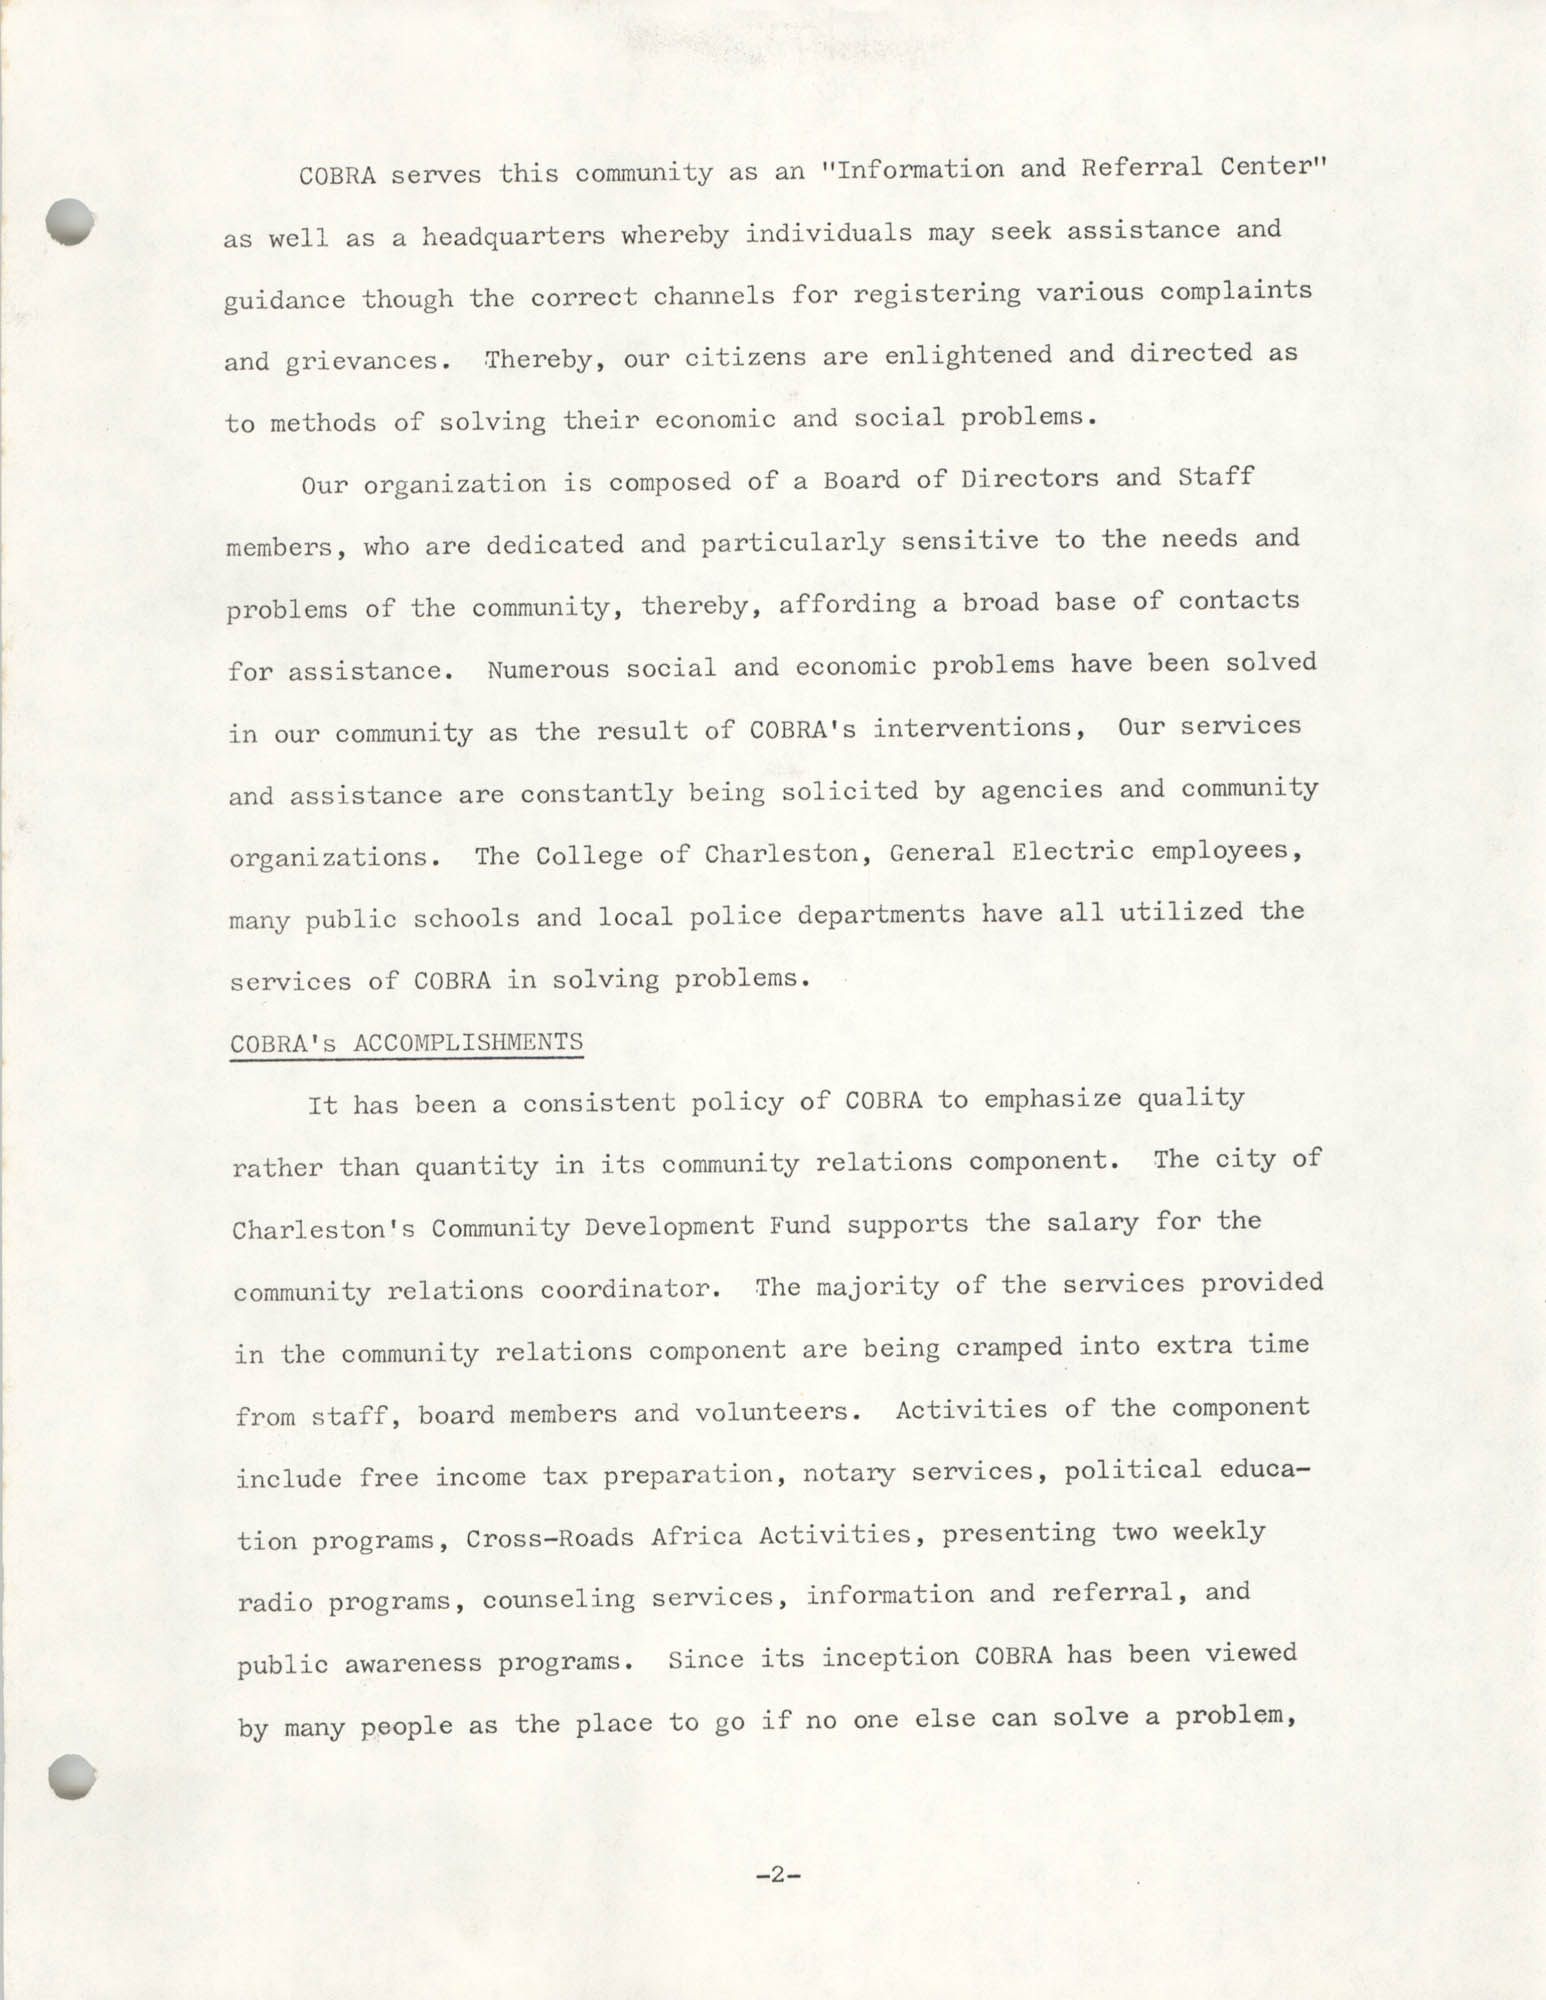 Organizational Information for COBRA, Page 2